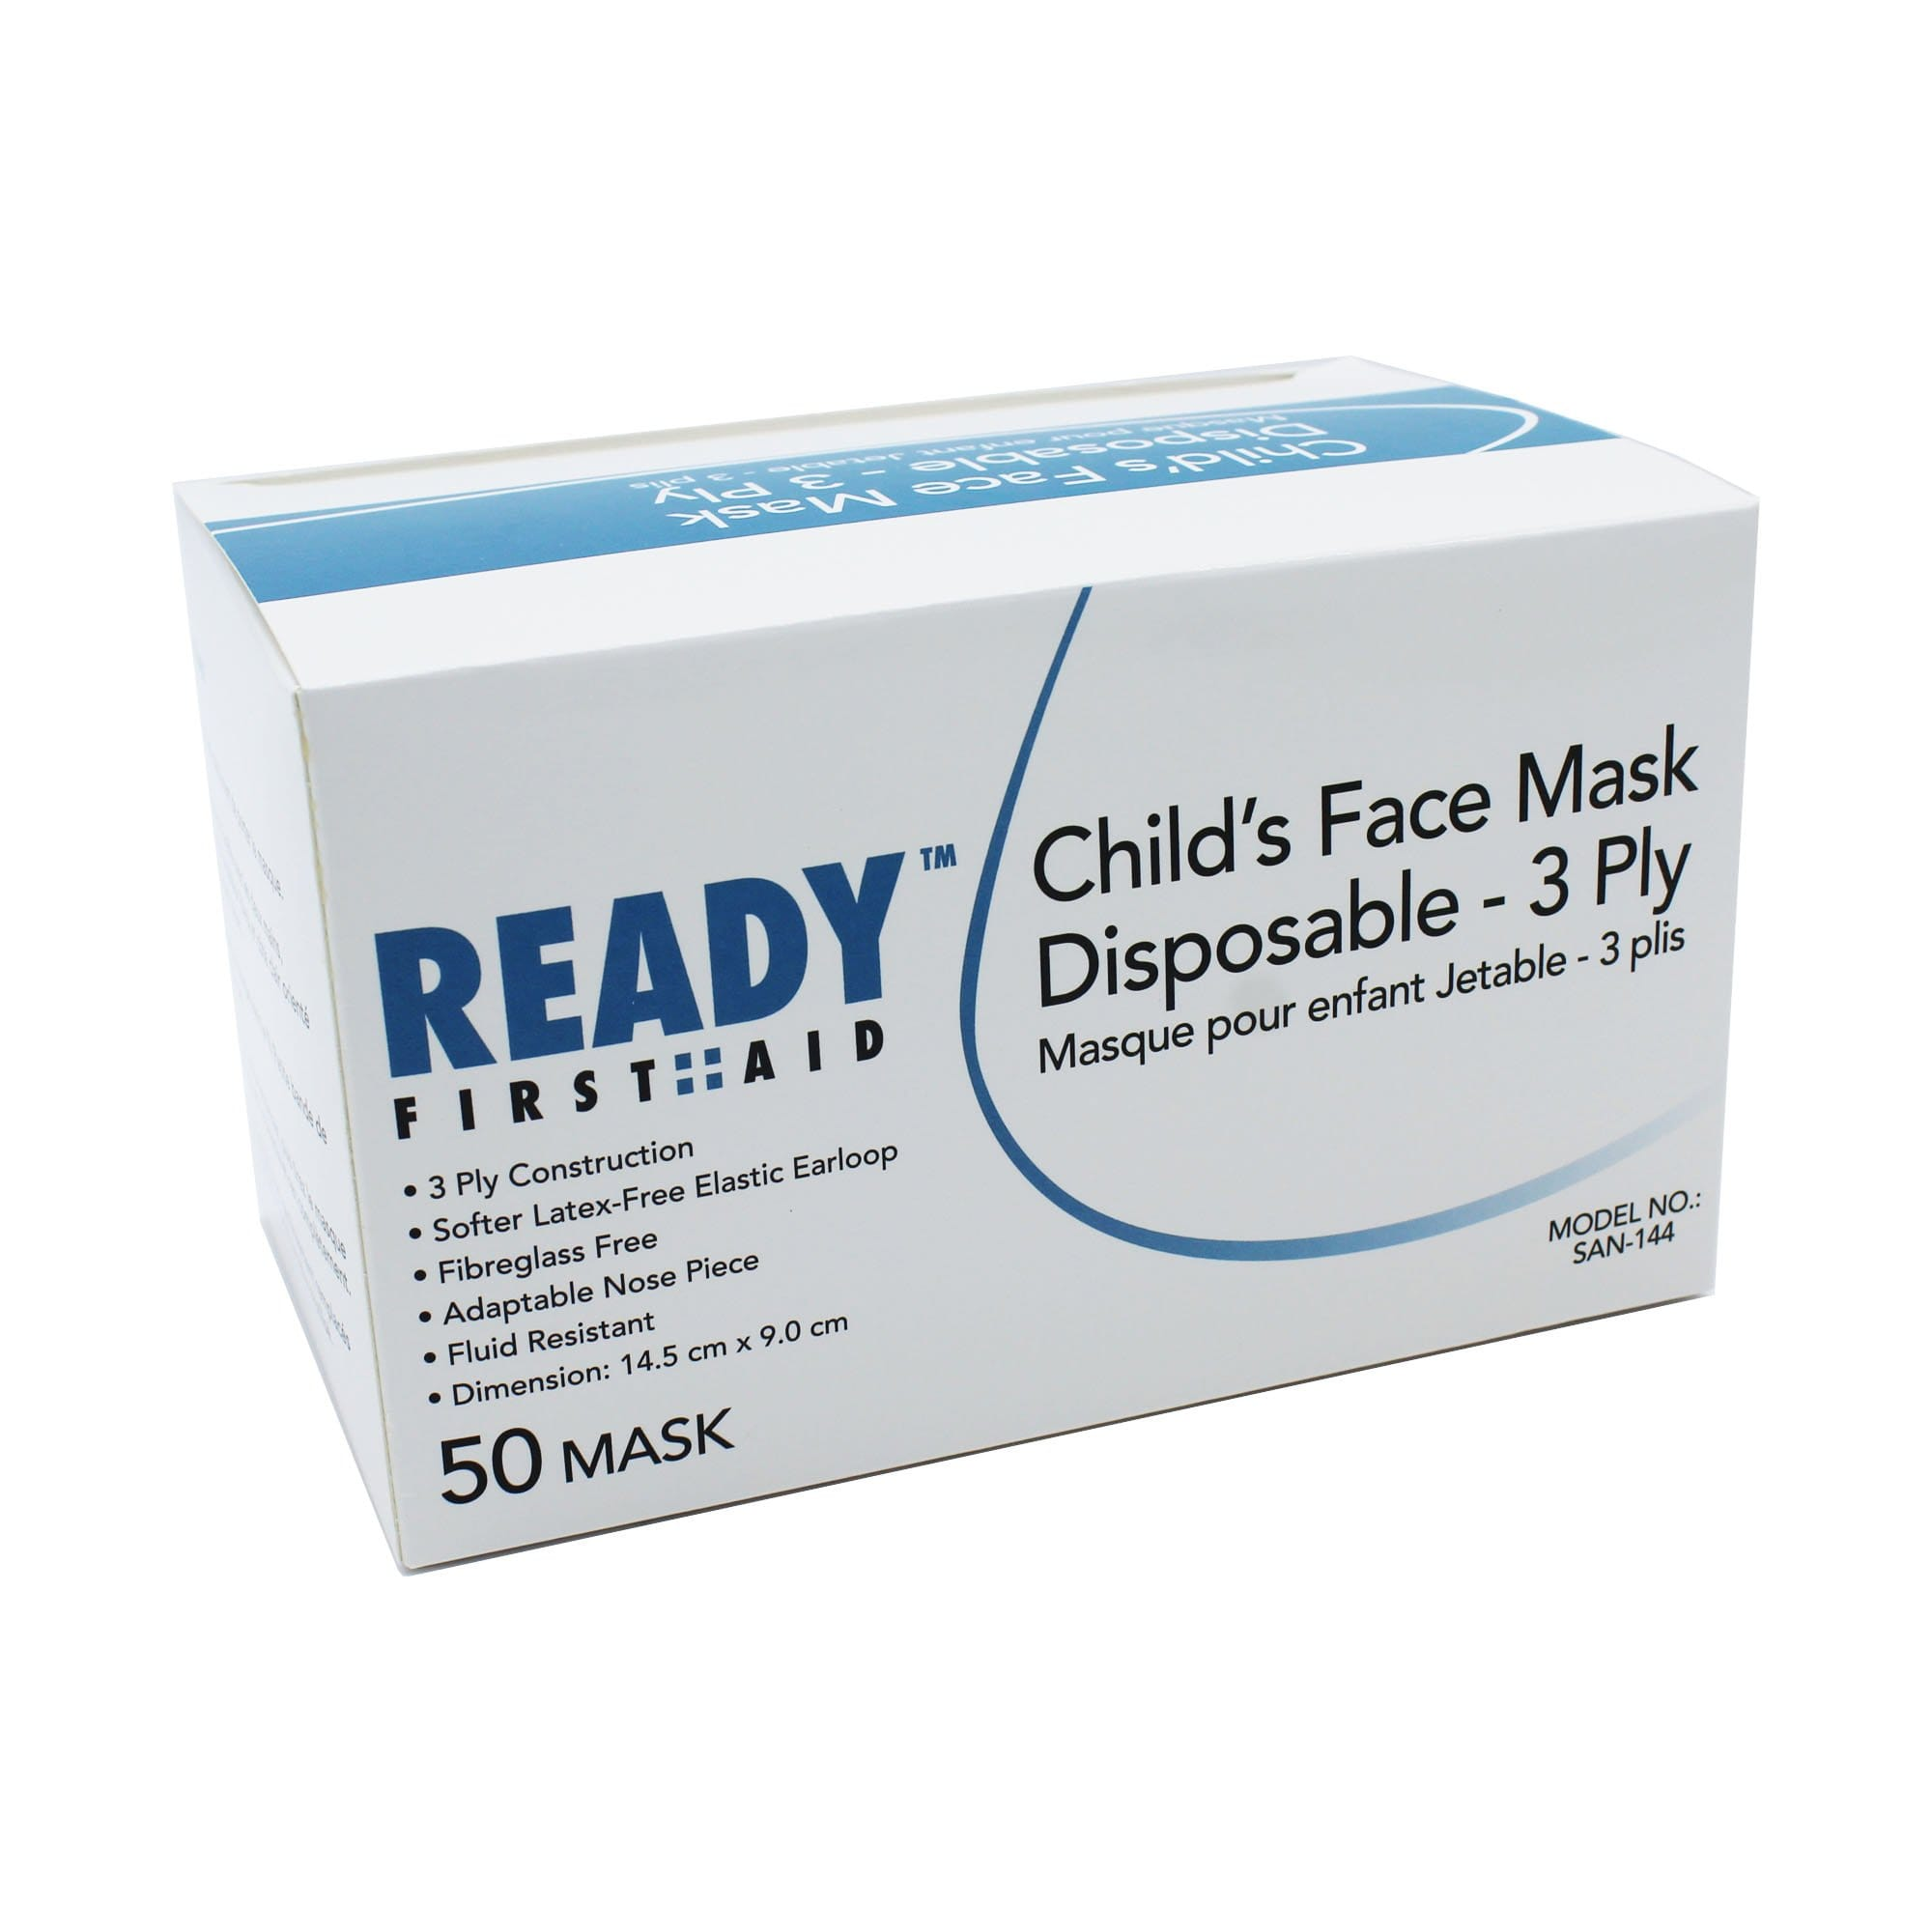 Kids Mask,  3-PLY Earloop Disposable Box of 50 - Ready First Aid